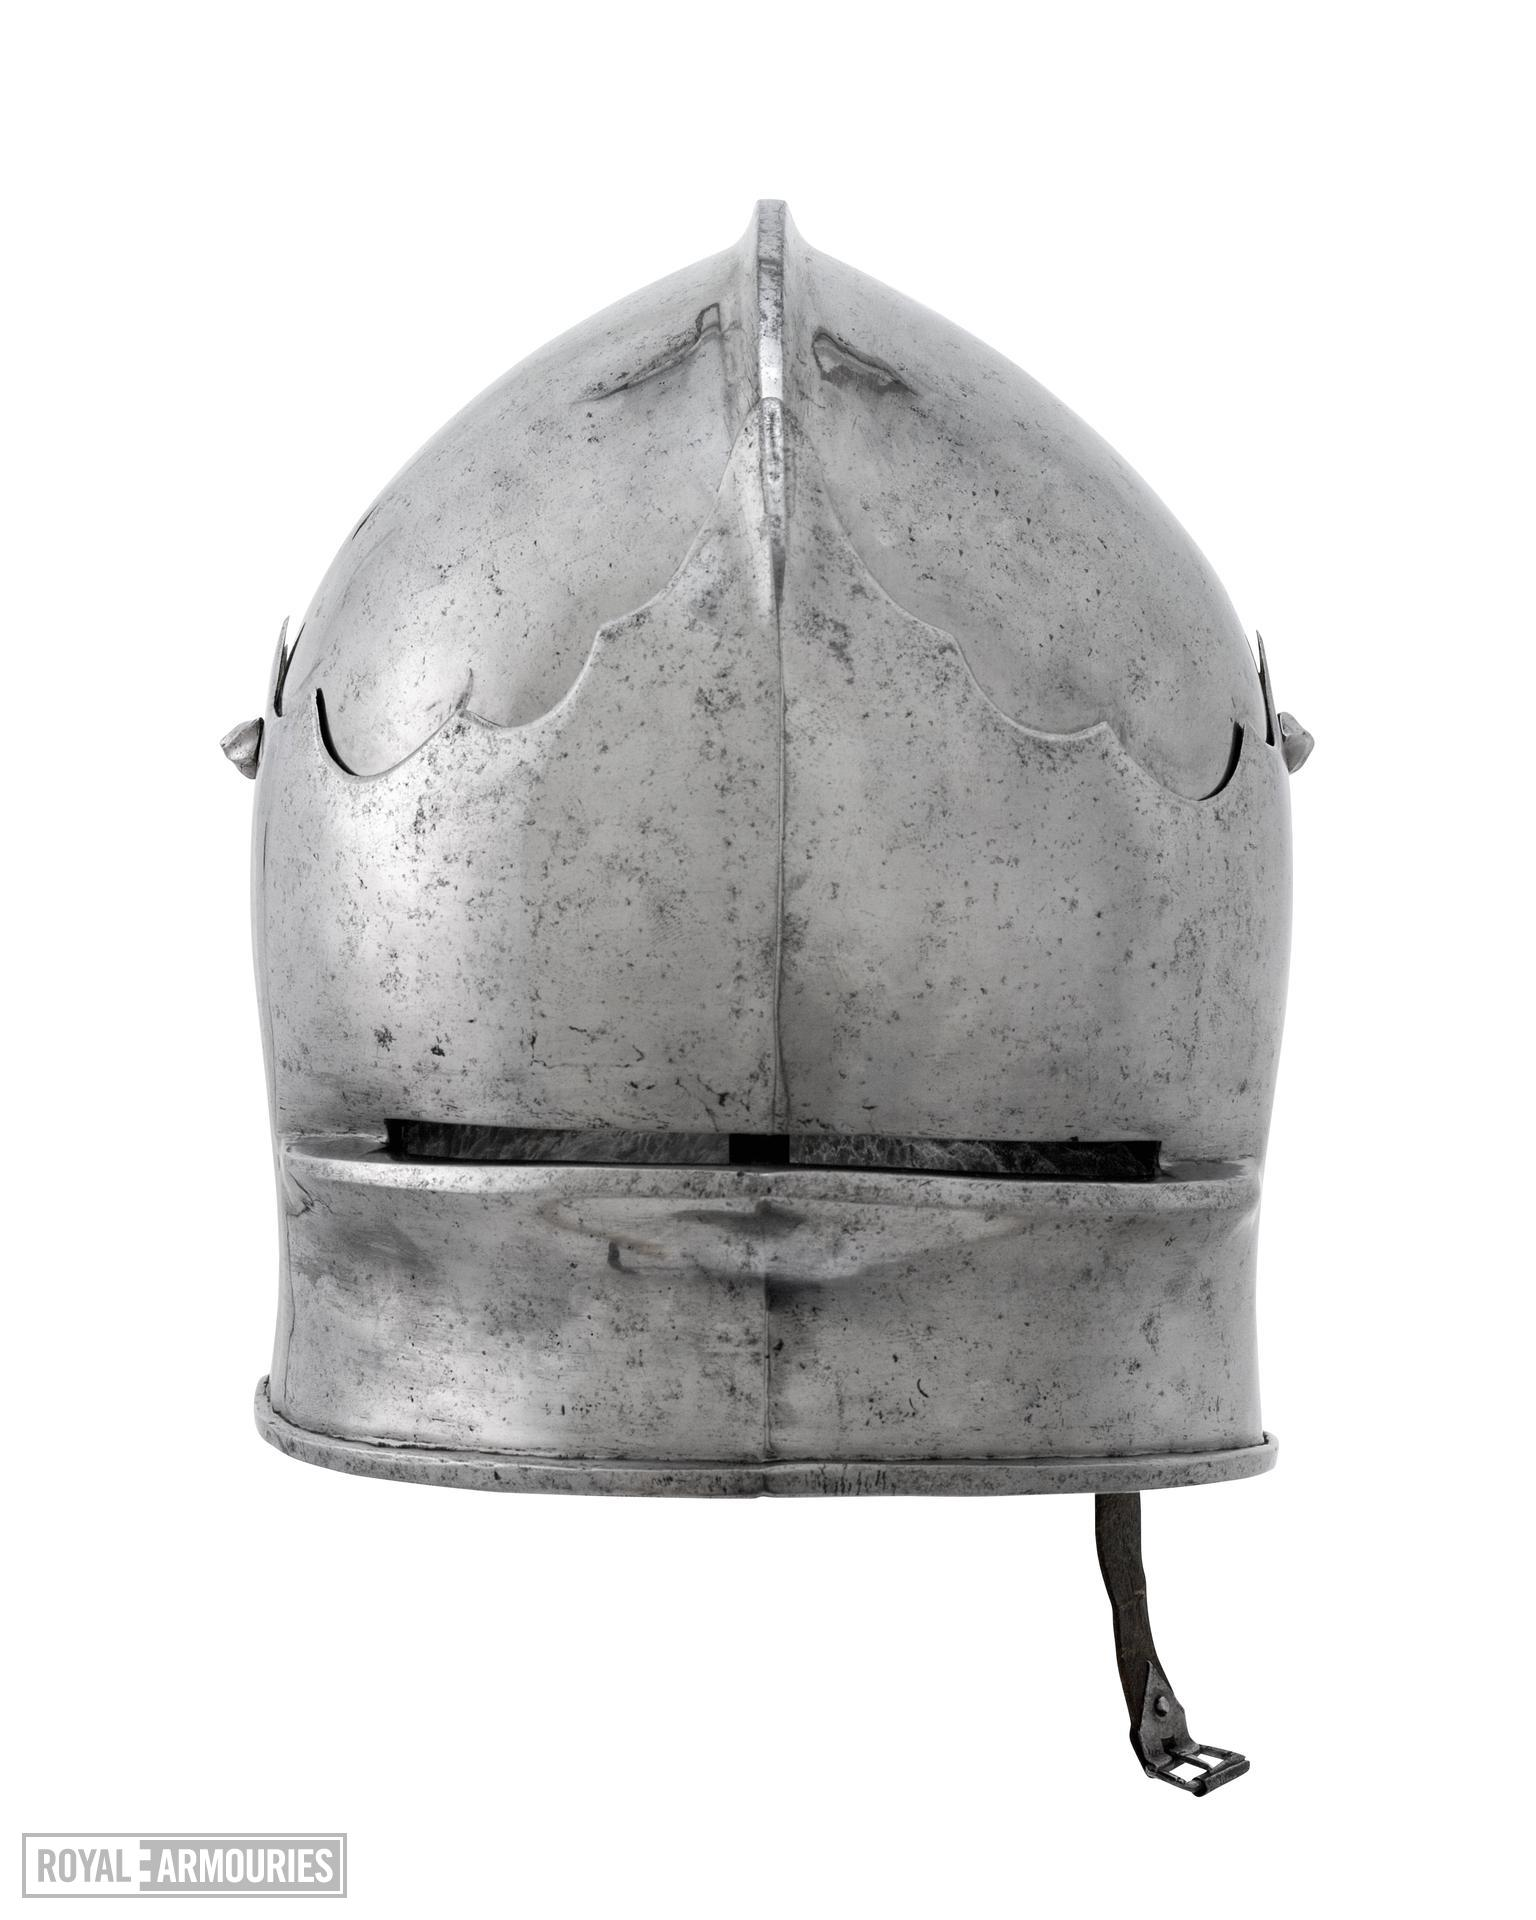 Composite armour Consists of II.168 A Sallet; II.168 B Bevor; II.168 C Breastplate; II.168 D Backplate; II.168 E Right pauldron and vambrace; II.168 F Left pauldron; II.168 I Right greave; II.168 J Left greave; II.168 K Vambrace (incomplete)